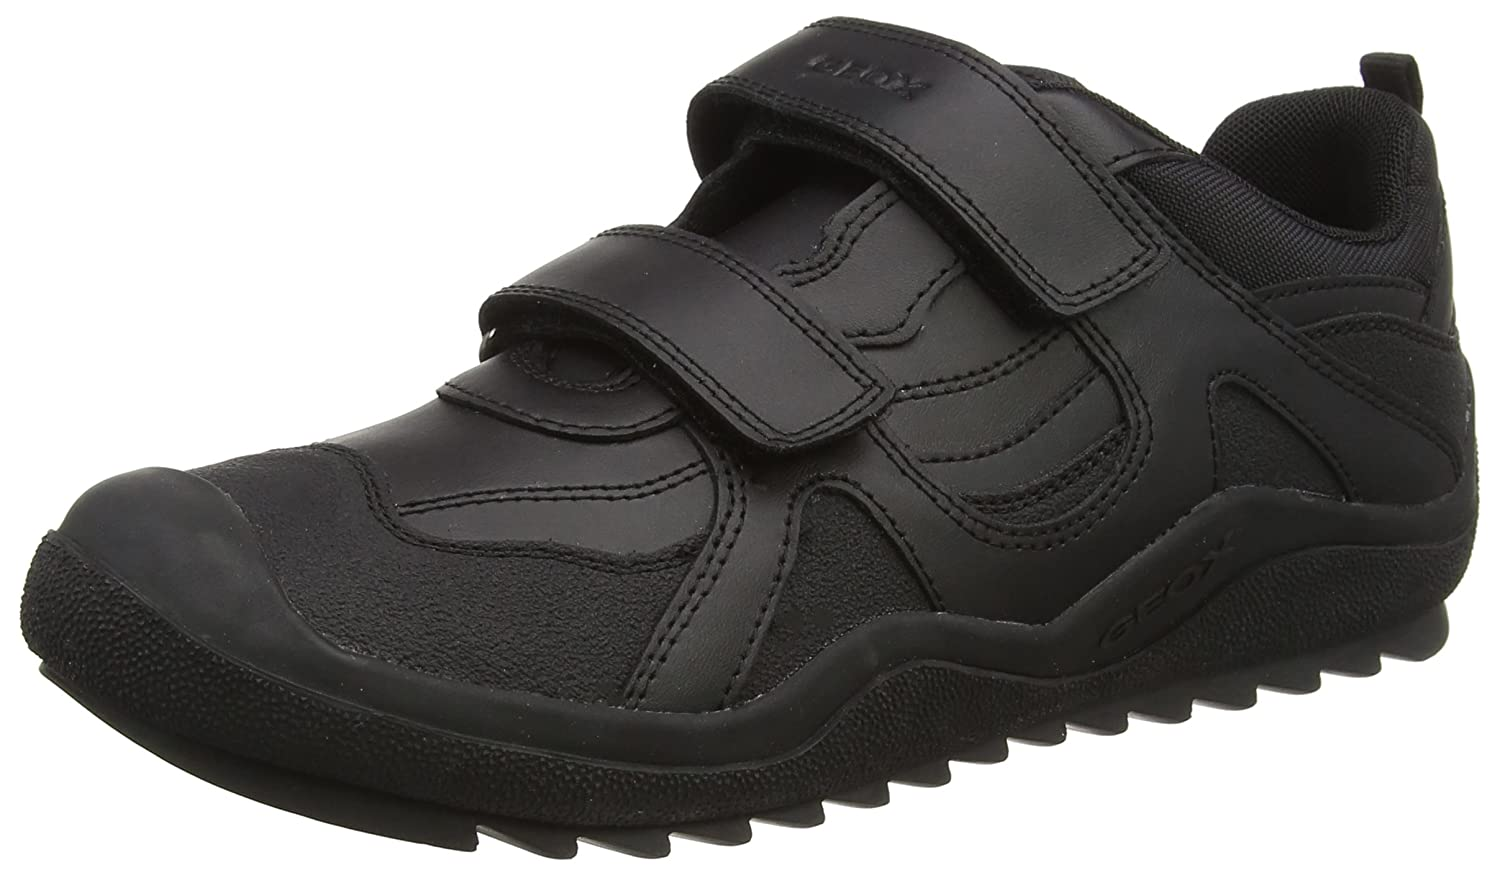 Geox Boys' Jr Attack a Low-Top Sneakers